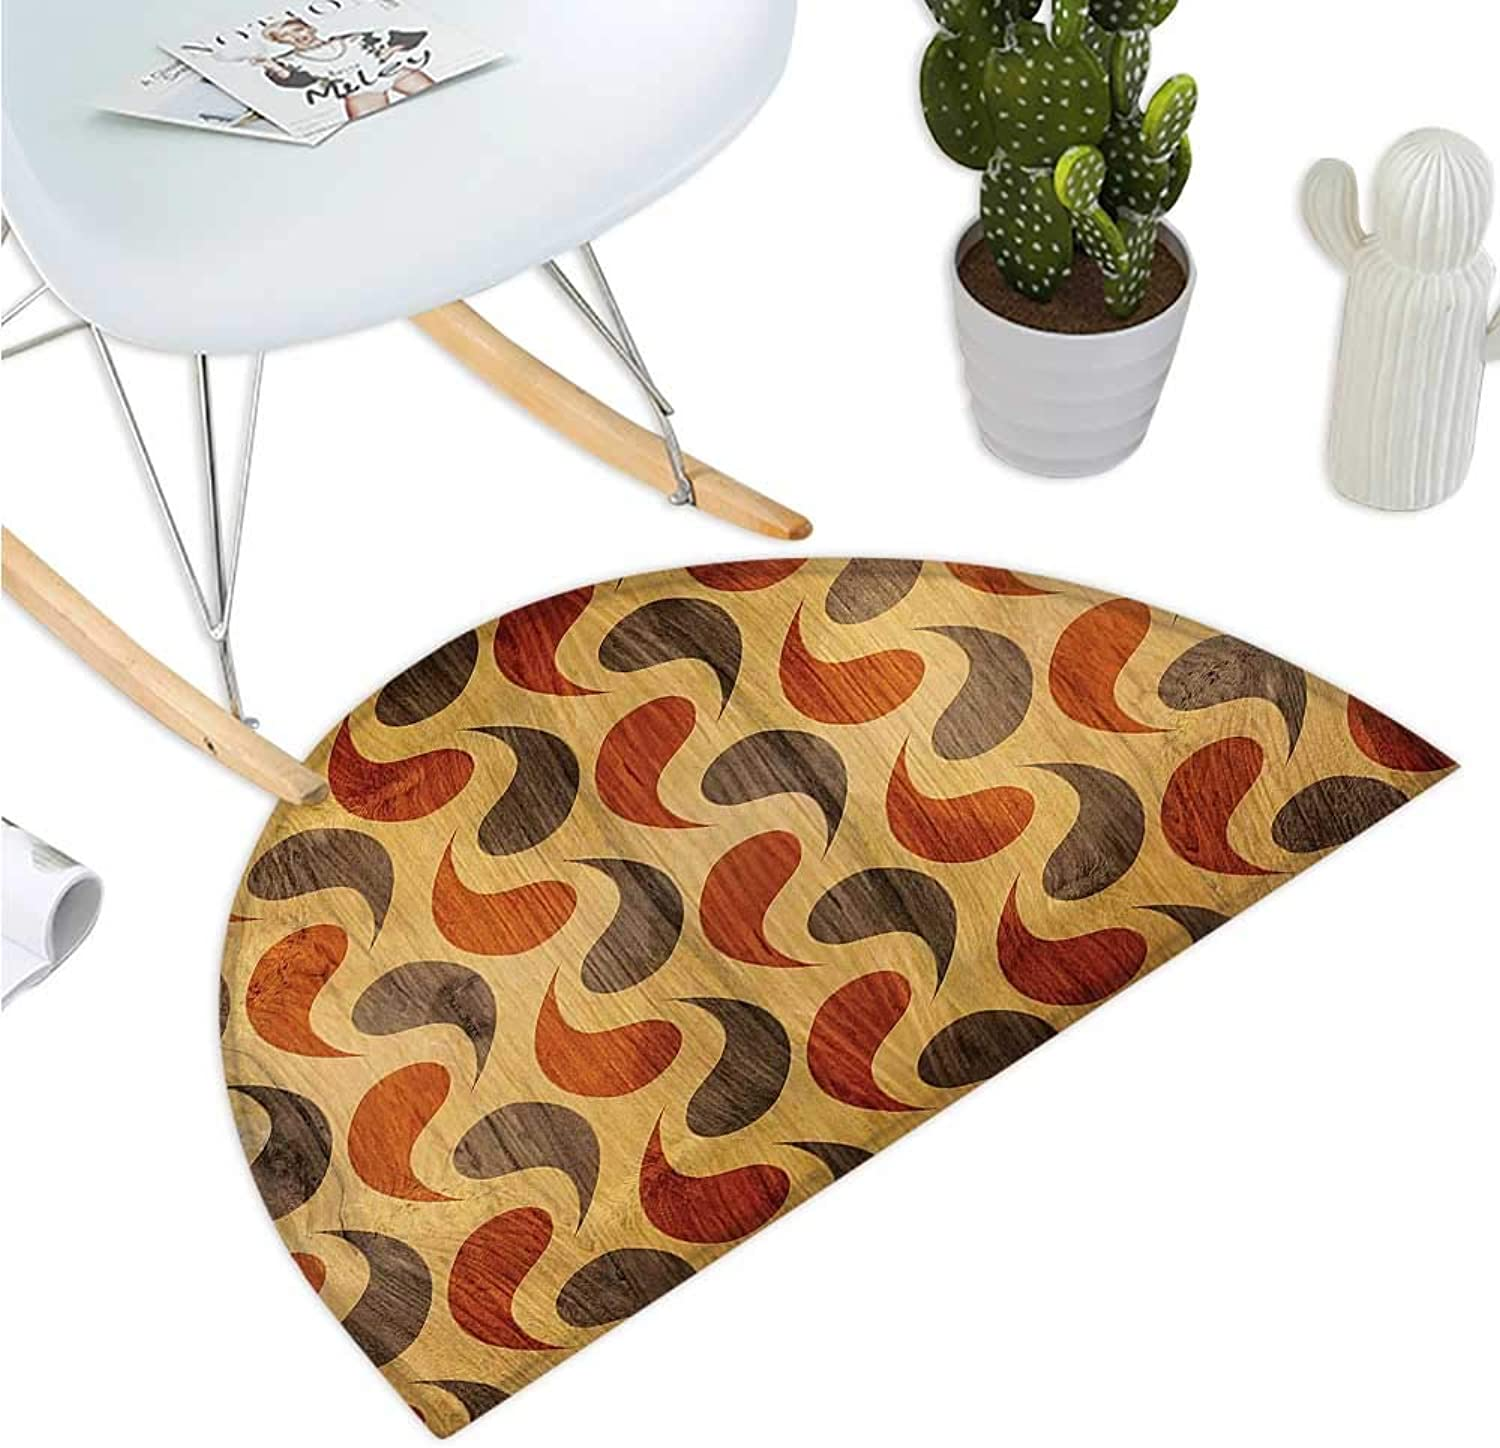 Rustic Semicircular Cushion Abstract Style Tadpole Patterns Tiling of Wavy Shapes Ornamental Artwork Print Entry Door Mat H 35.4  xD 53.1  Brown Black